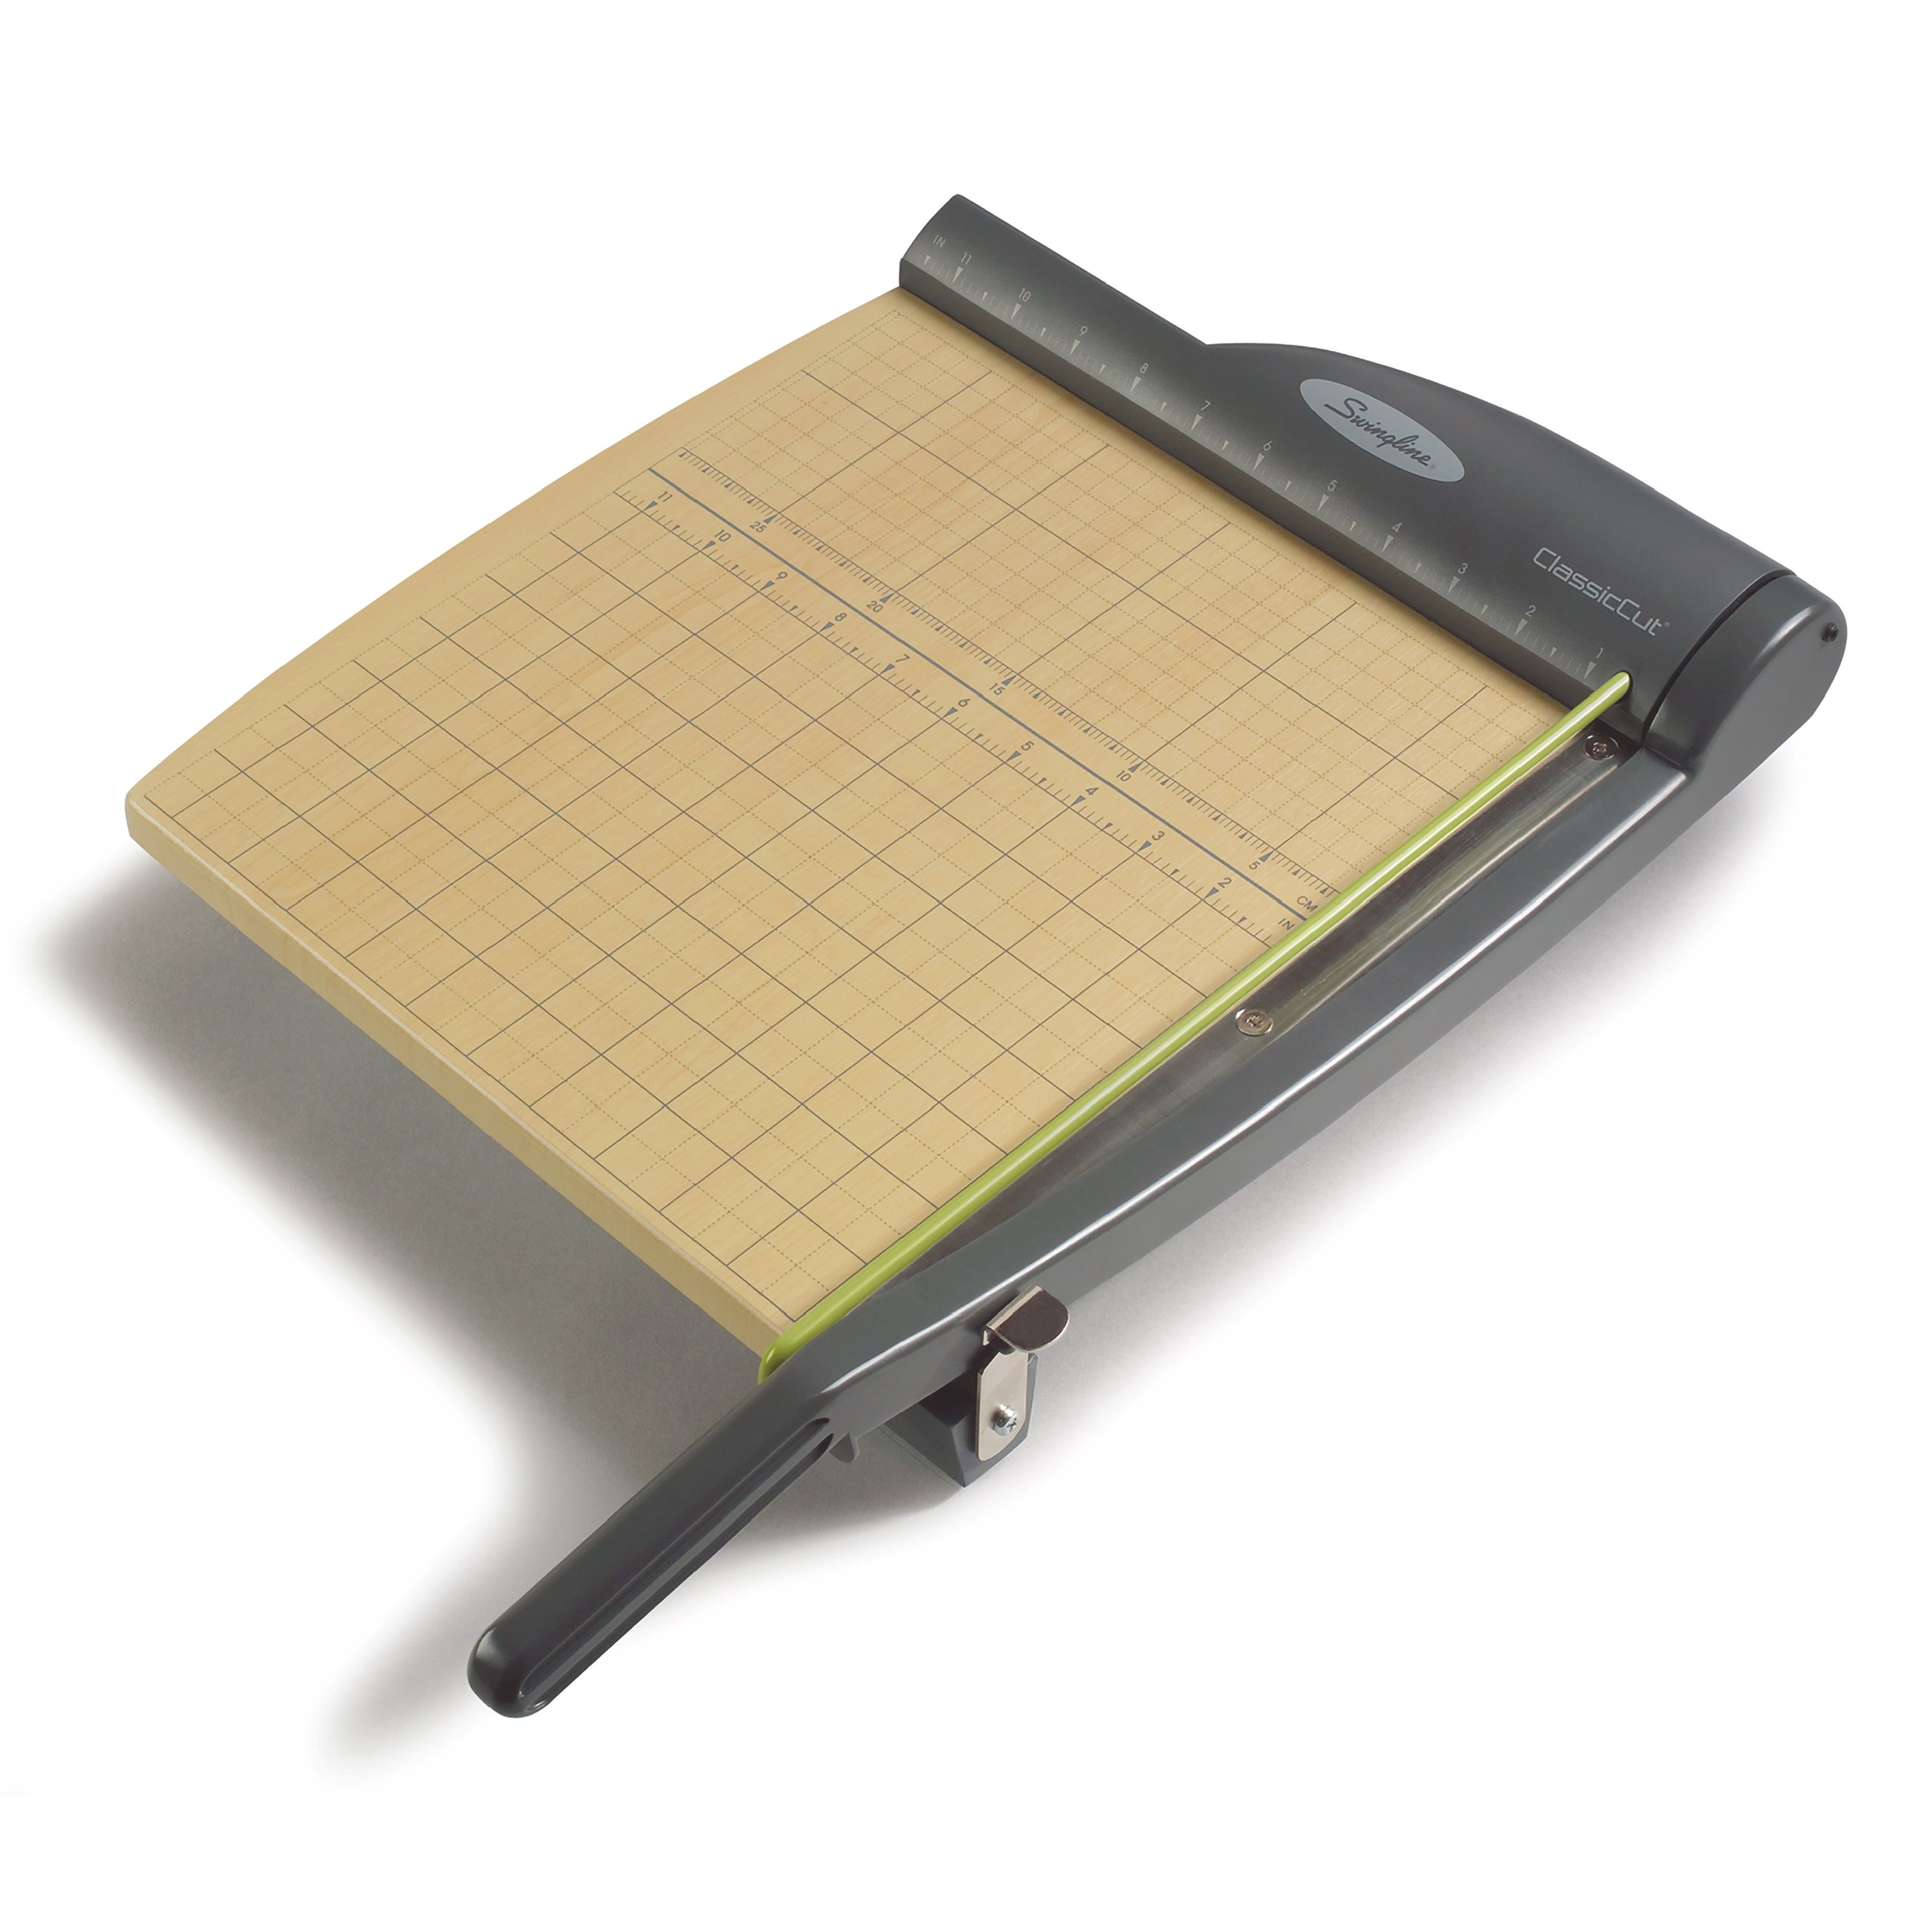 Swingline ClassicCut Pro Guillotine Trimmer, 15 Sheet Capacity (9112A)